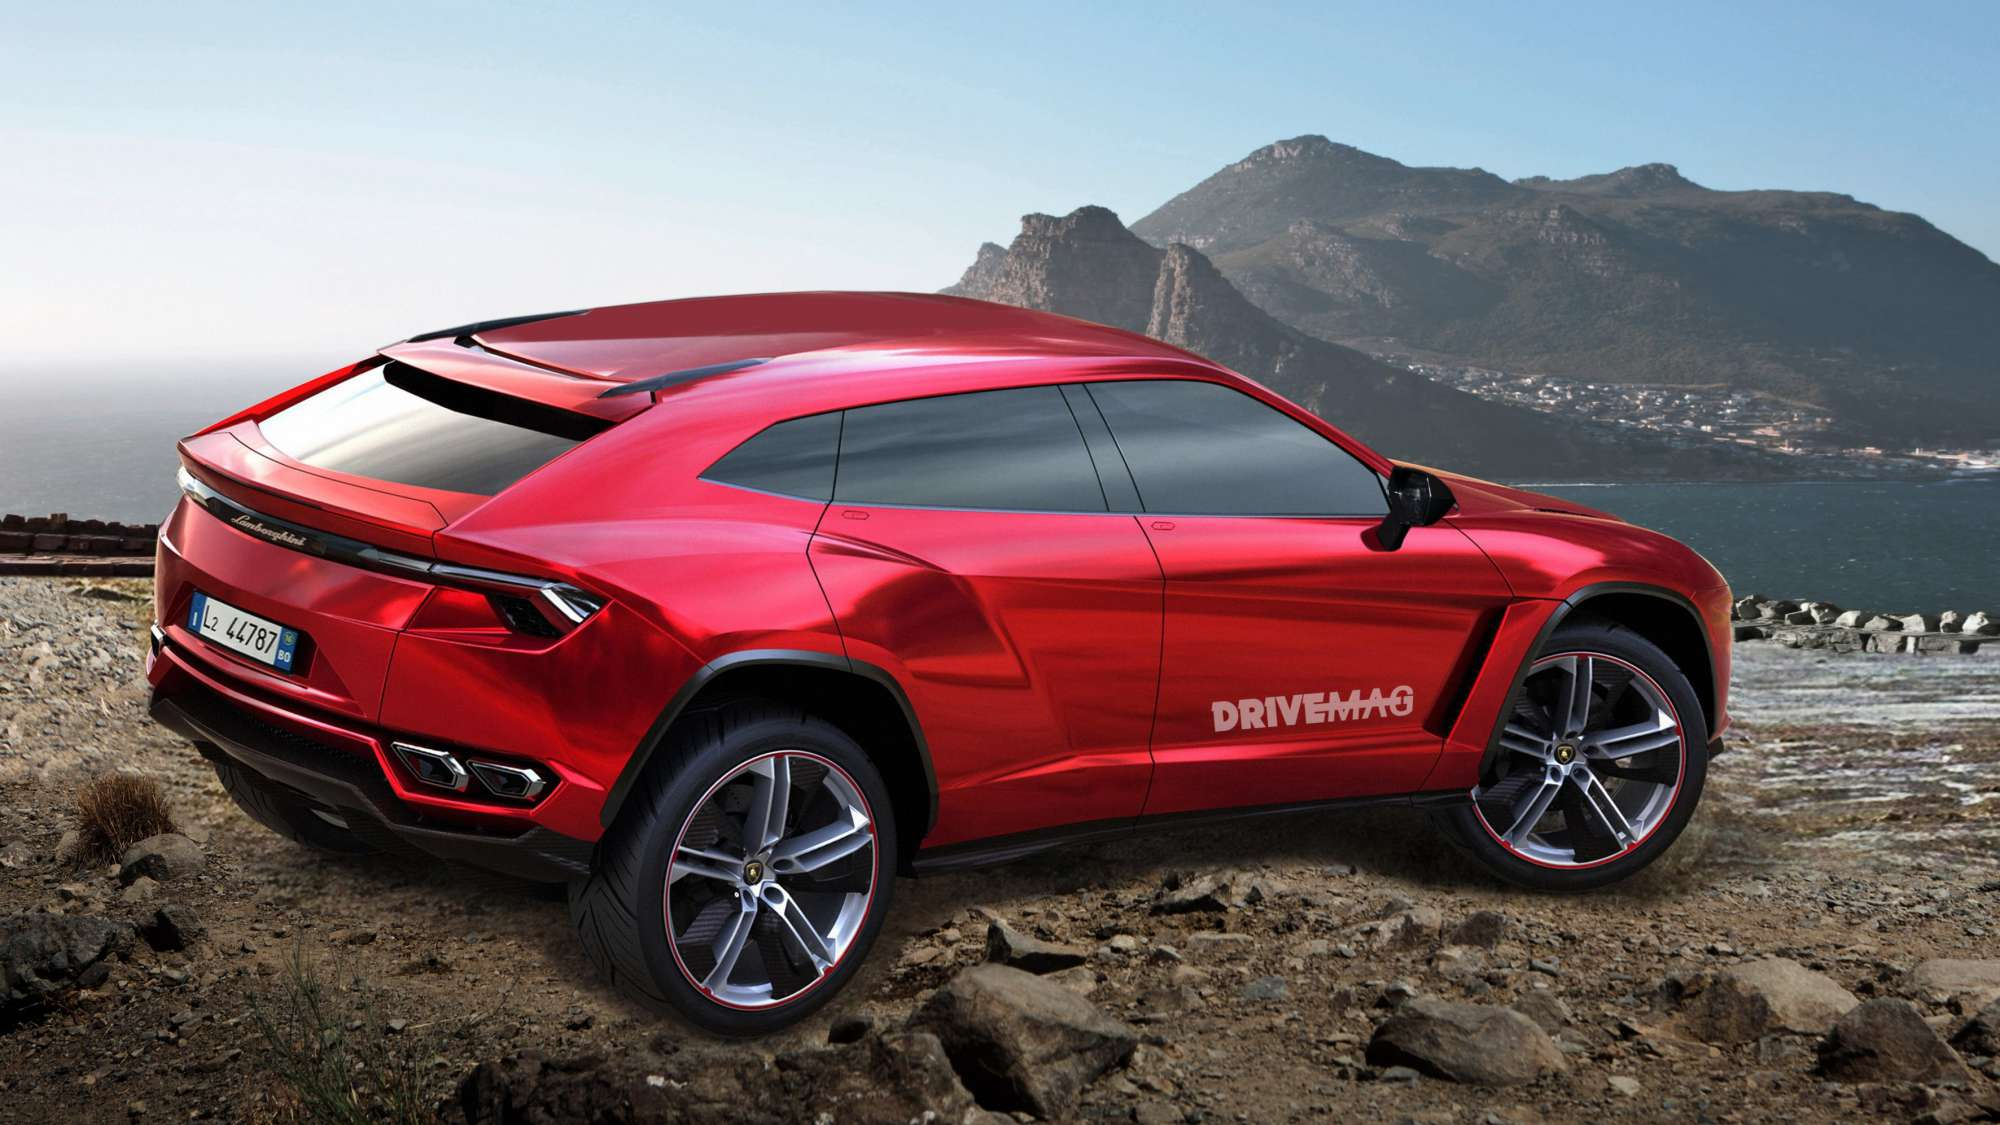 2018 lamborghini urus suv: everything you need to know